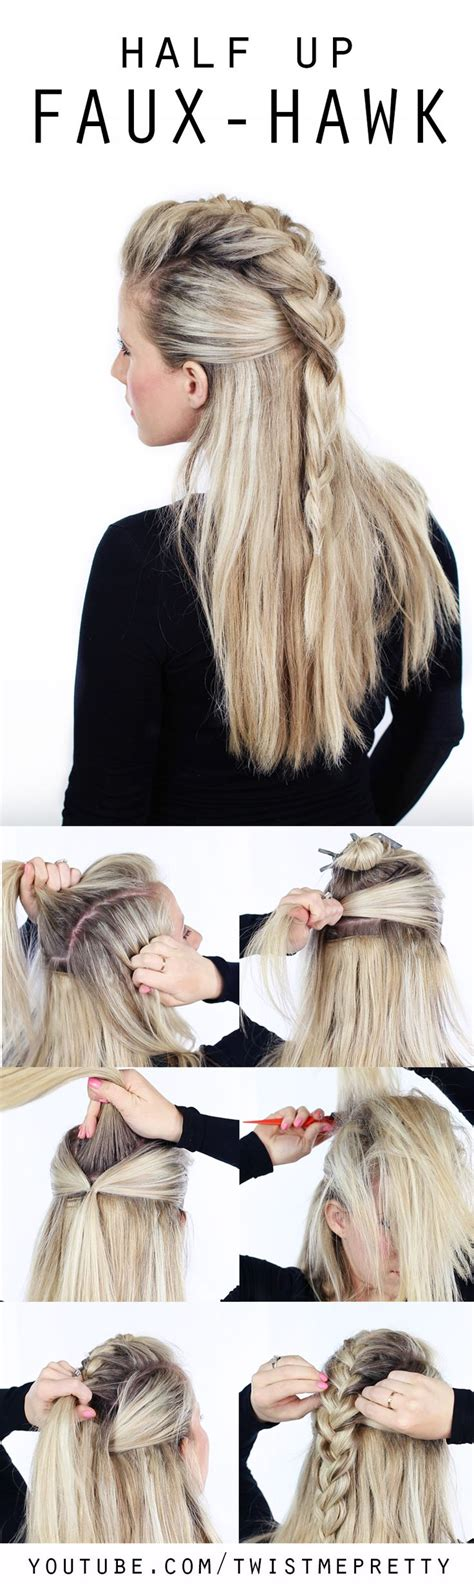 daily hairstyles at home 50 most beautiful hairstyles all women will love styles